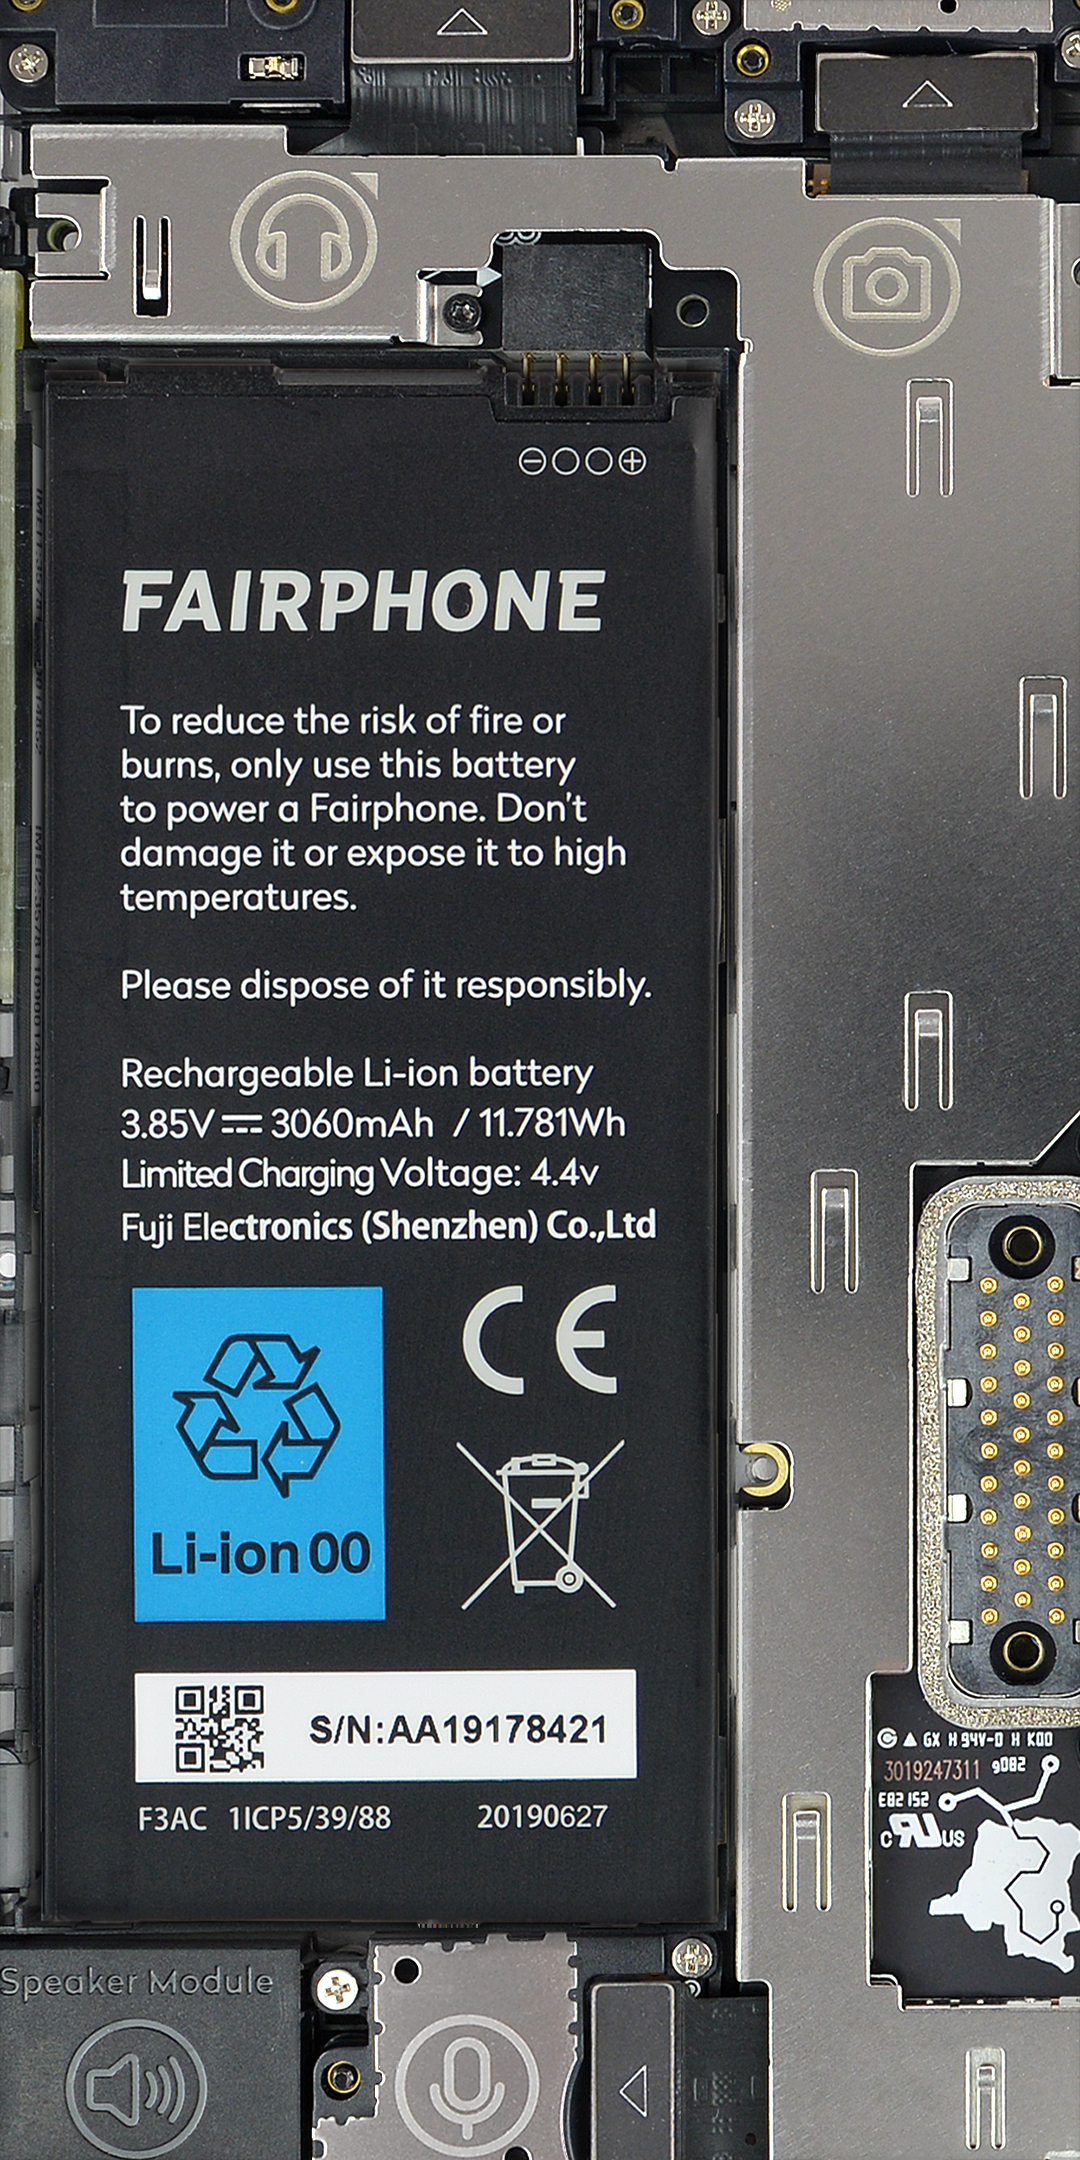 Fairphone 3 internal wallpaper